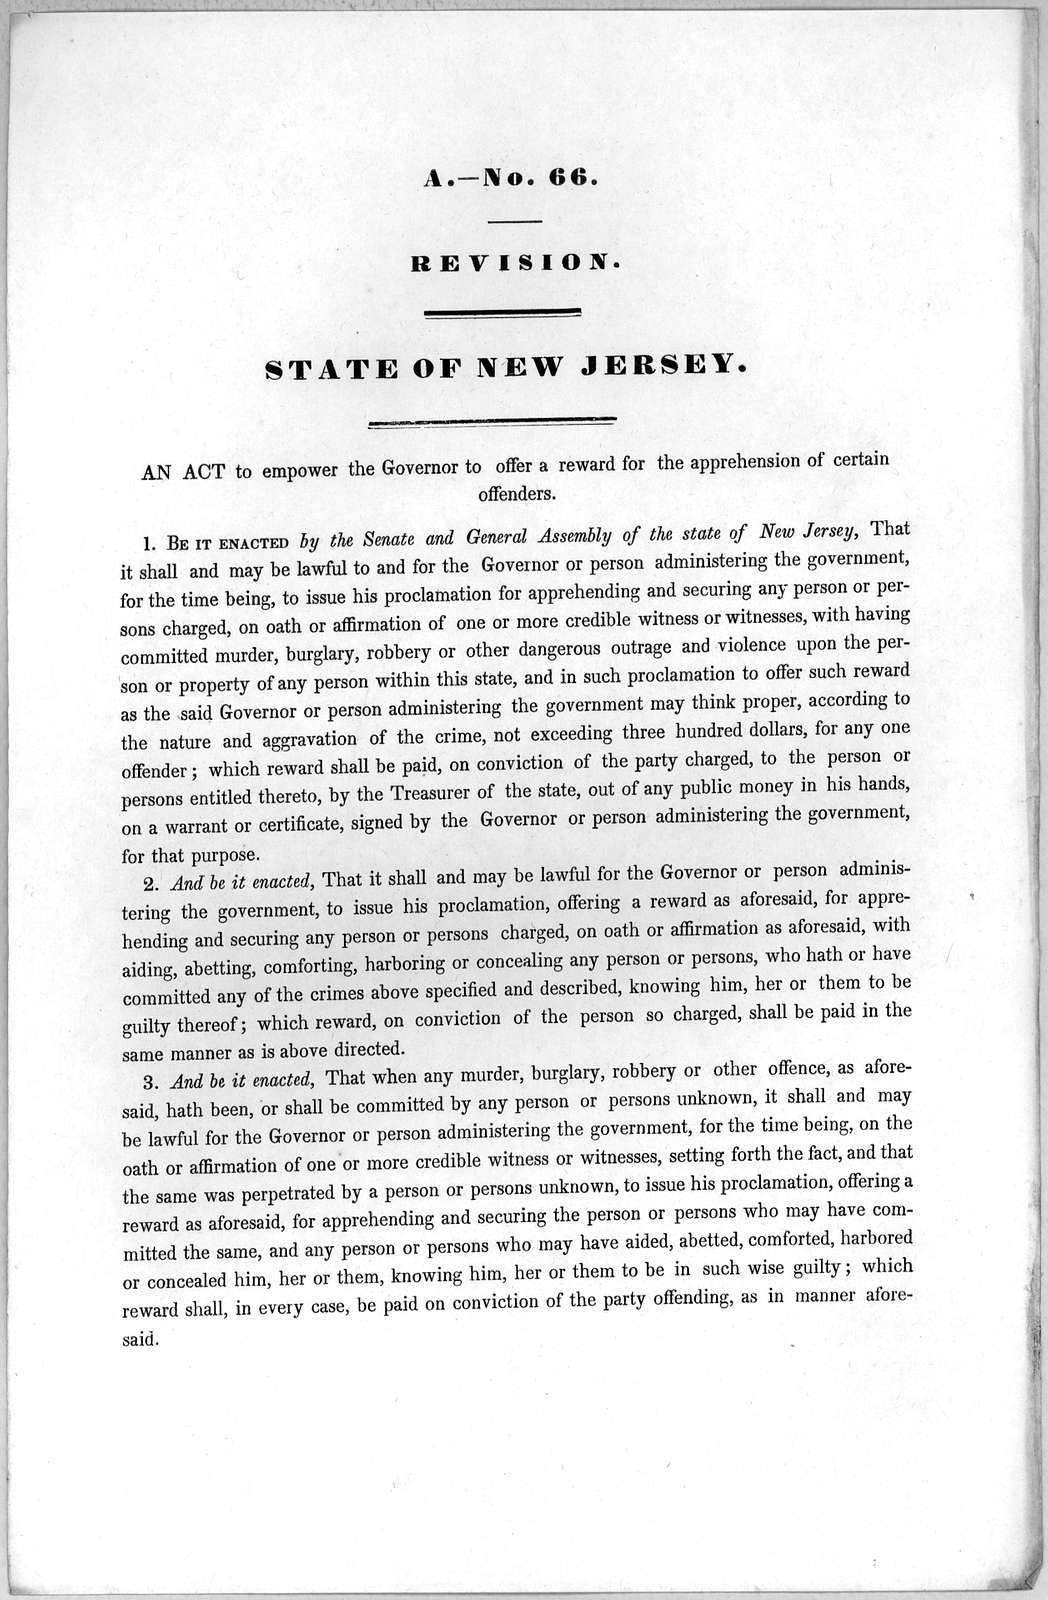 A.- No. 66. Revision. State of New Jersey. An act to empower the Governor to offer a reward for the apprehension of certain offenders [1846?].